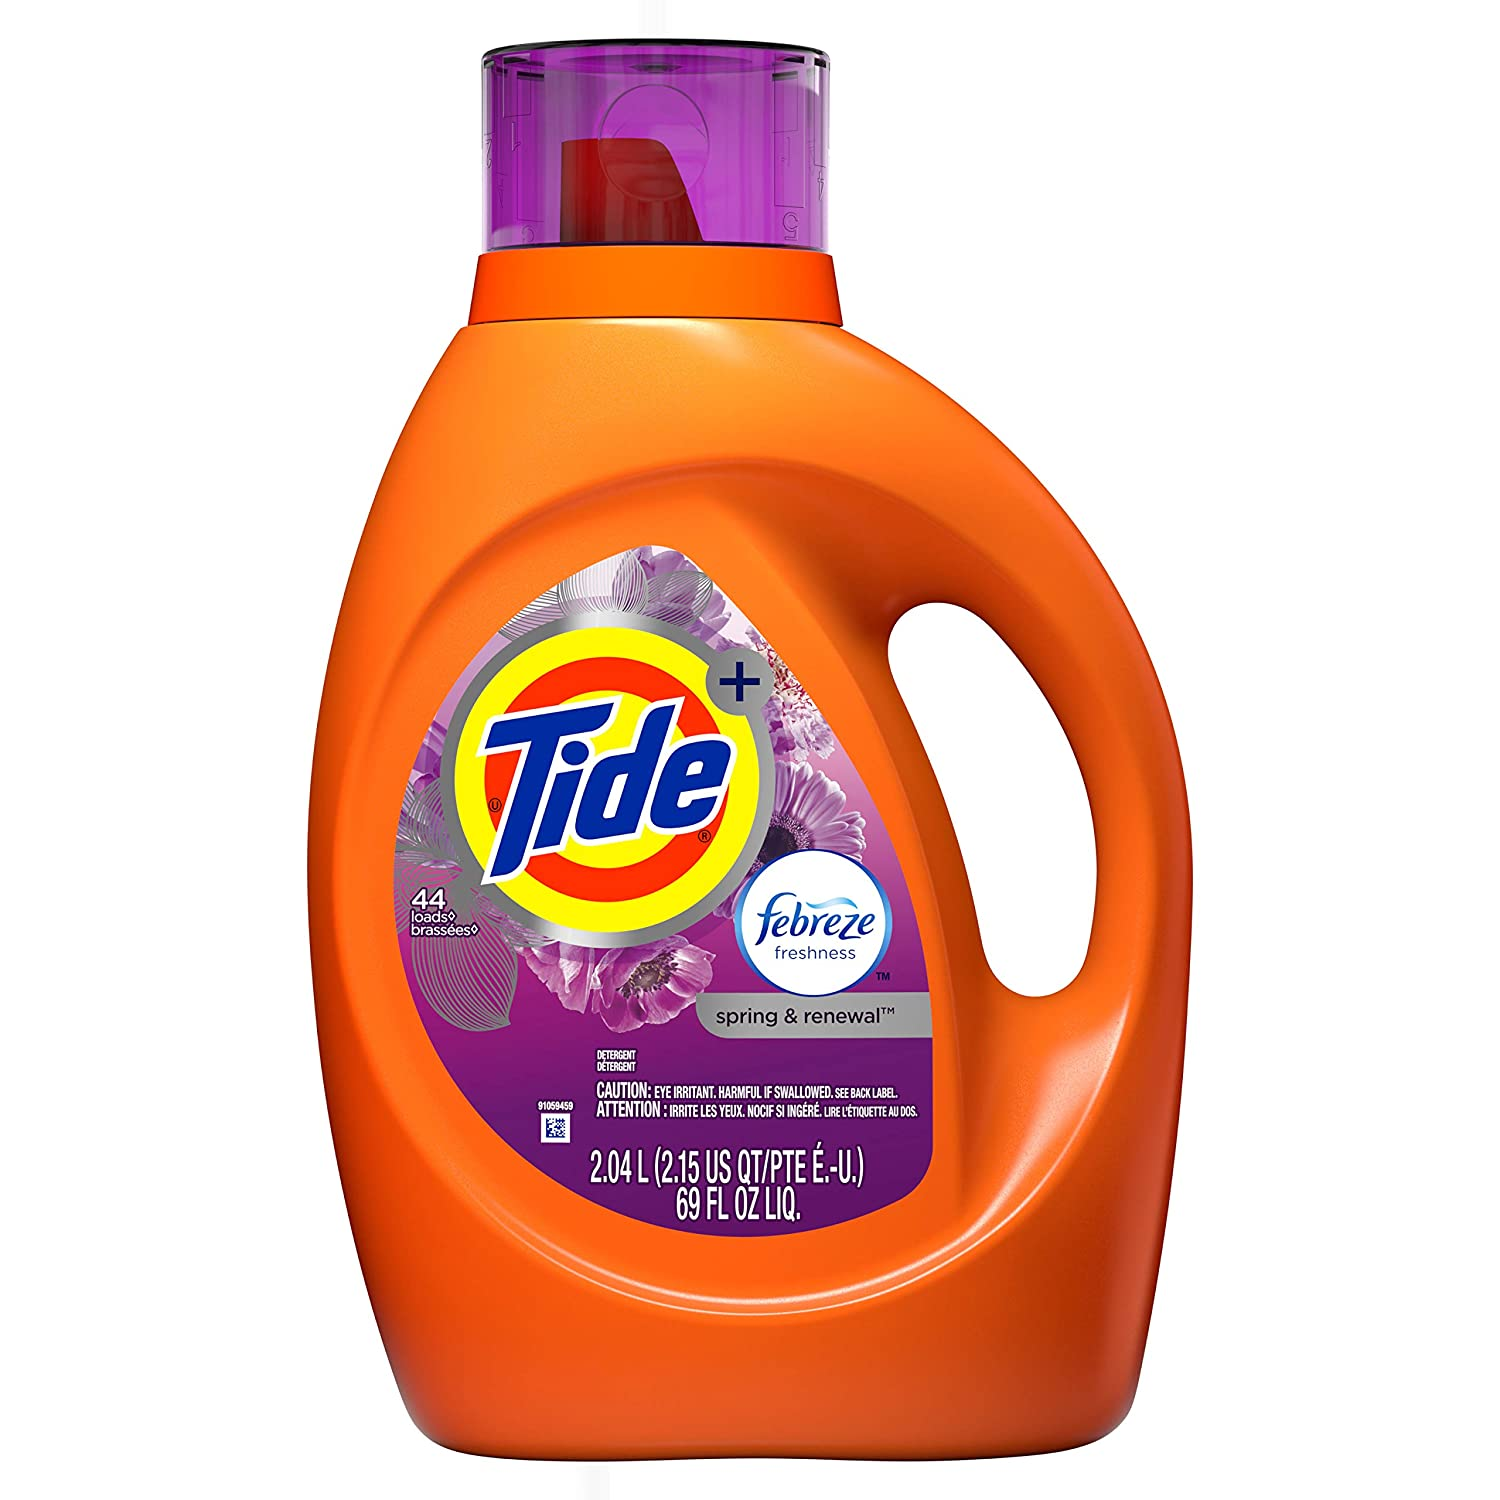 Tide Tide Plus Febreze Freshness Spring & Renewal HE Turbo Clean Liquid Laundry Detergent, 69 fl oz 44 Loads, 69 Fl Oz